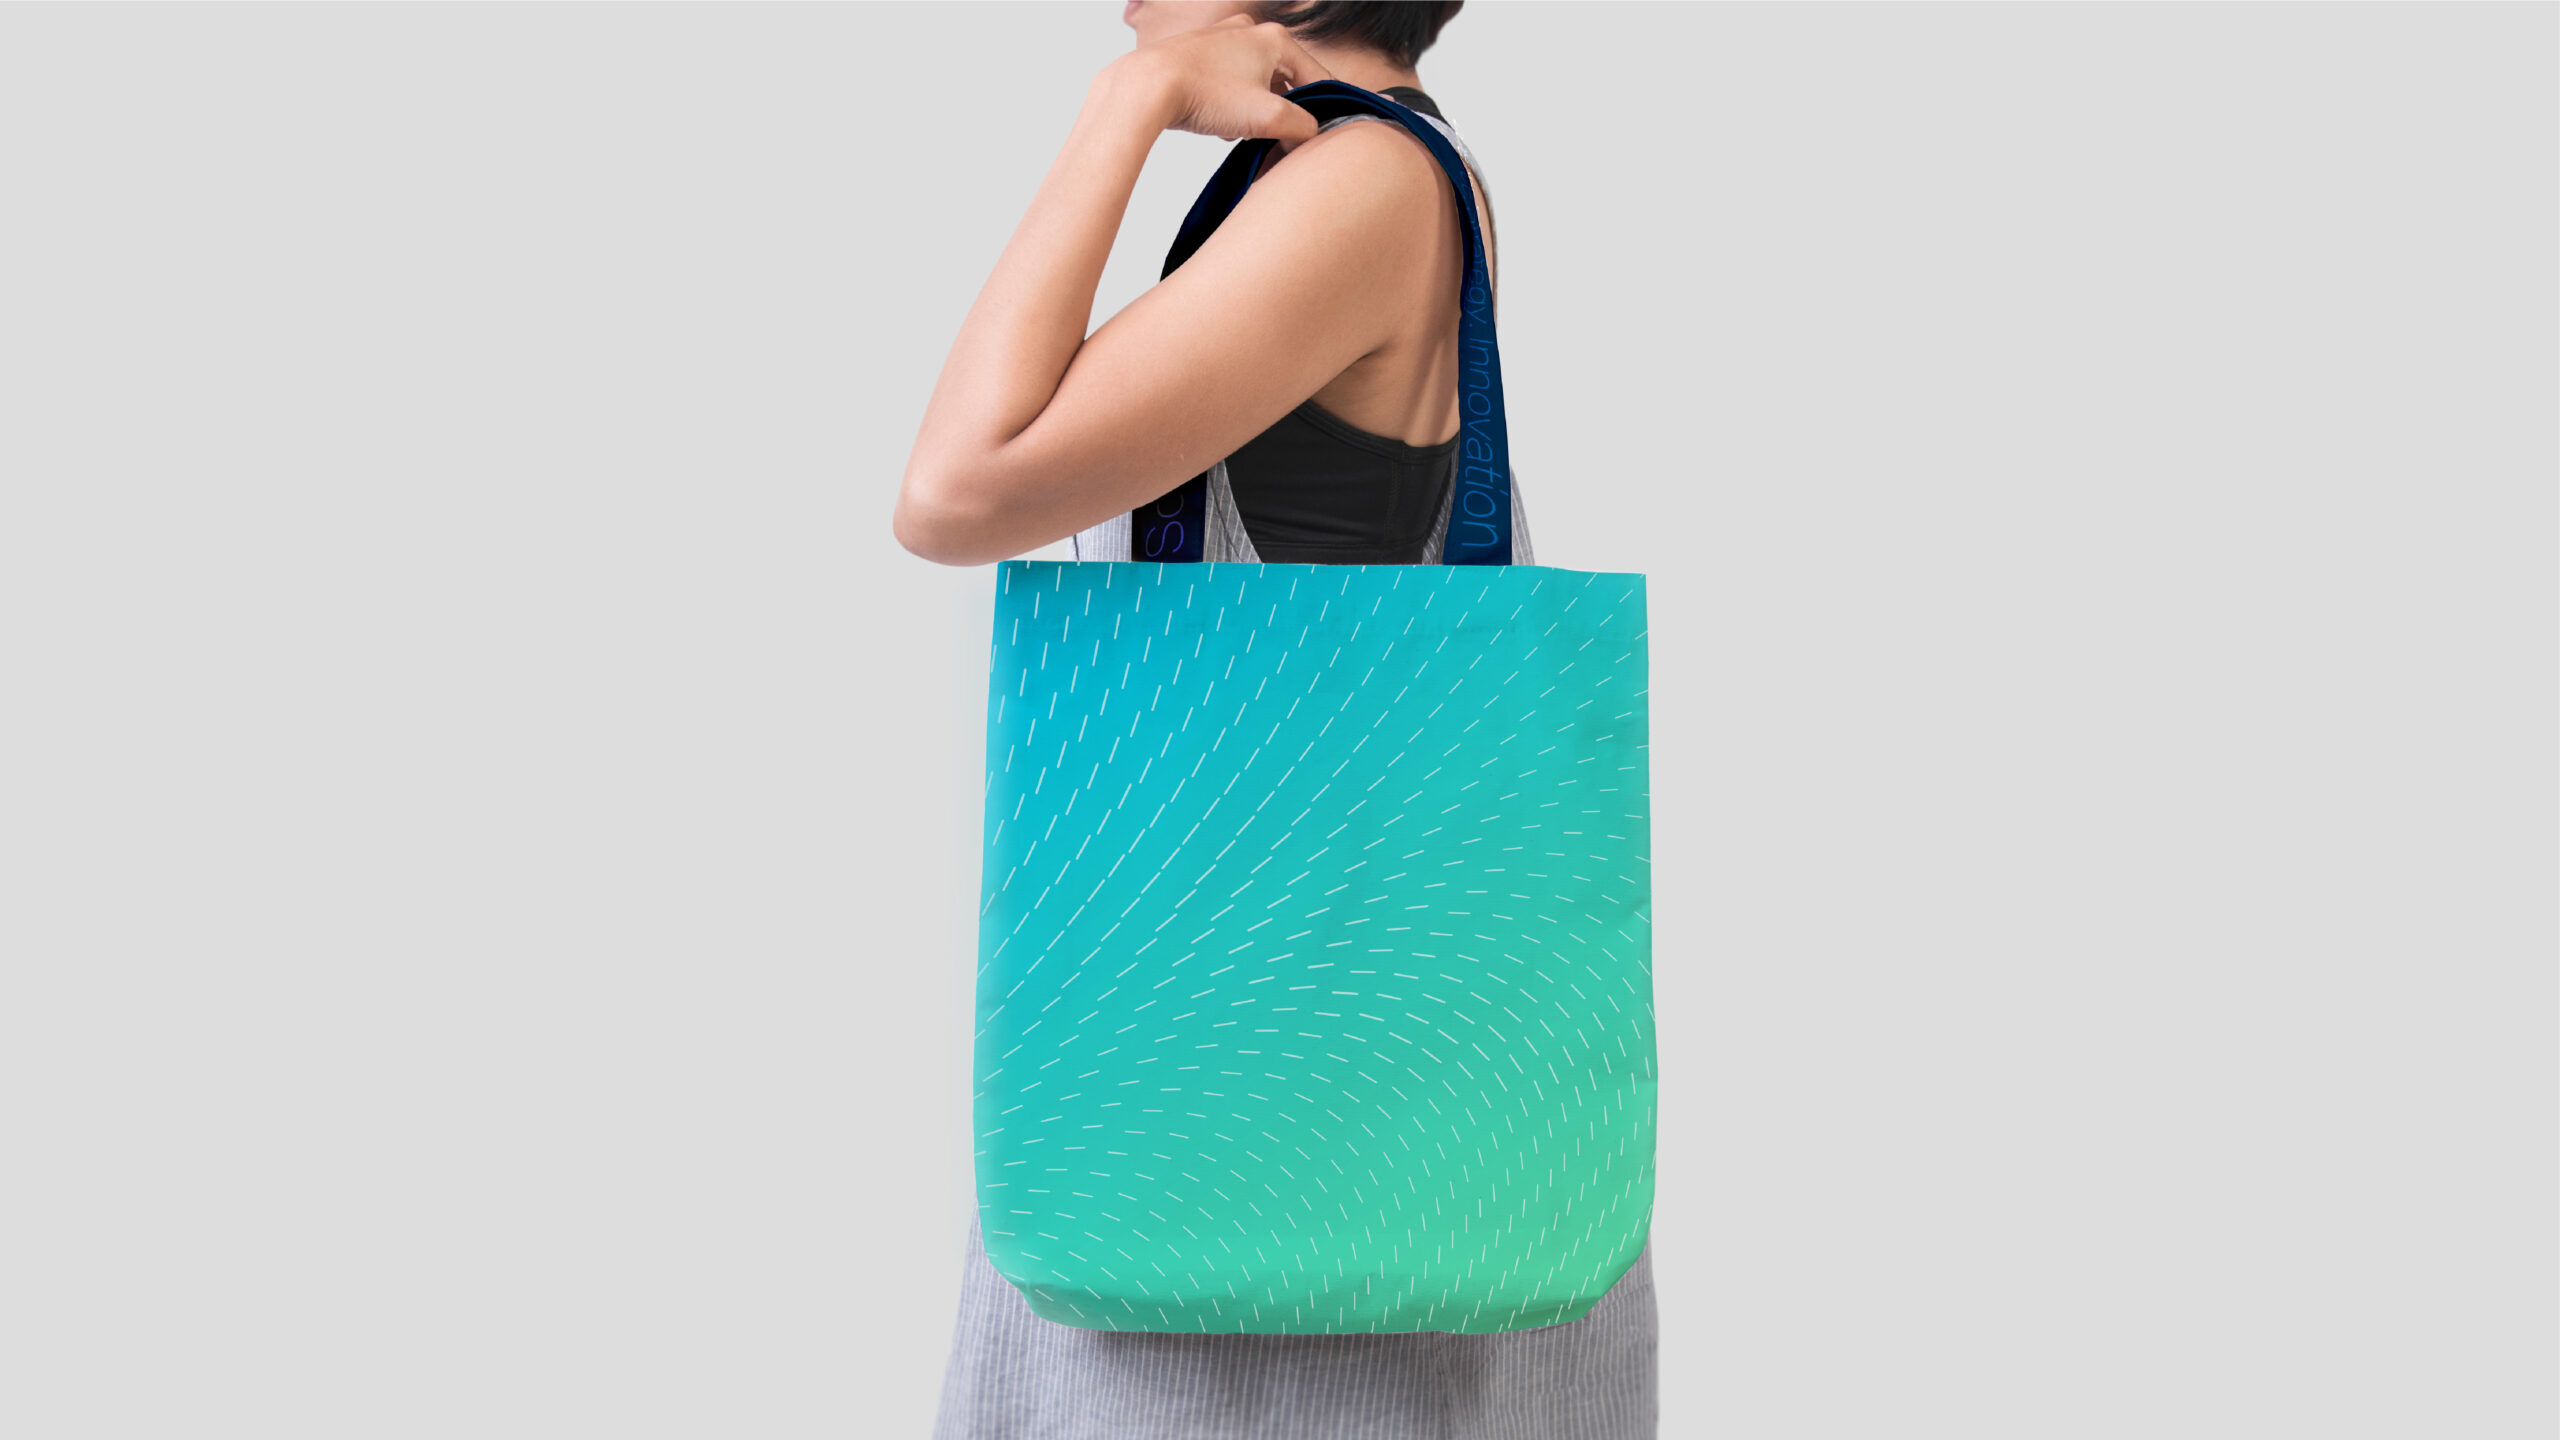 Woman with RiverVest branded tote bag